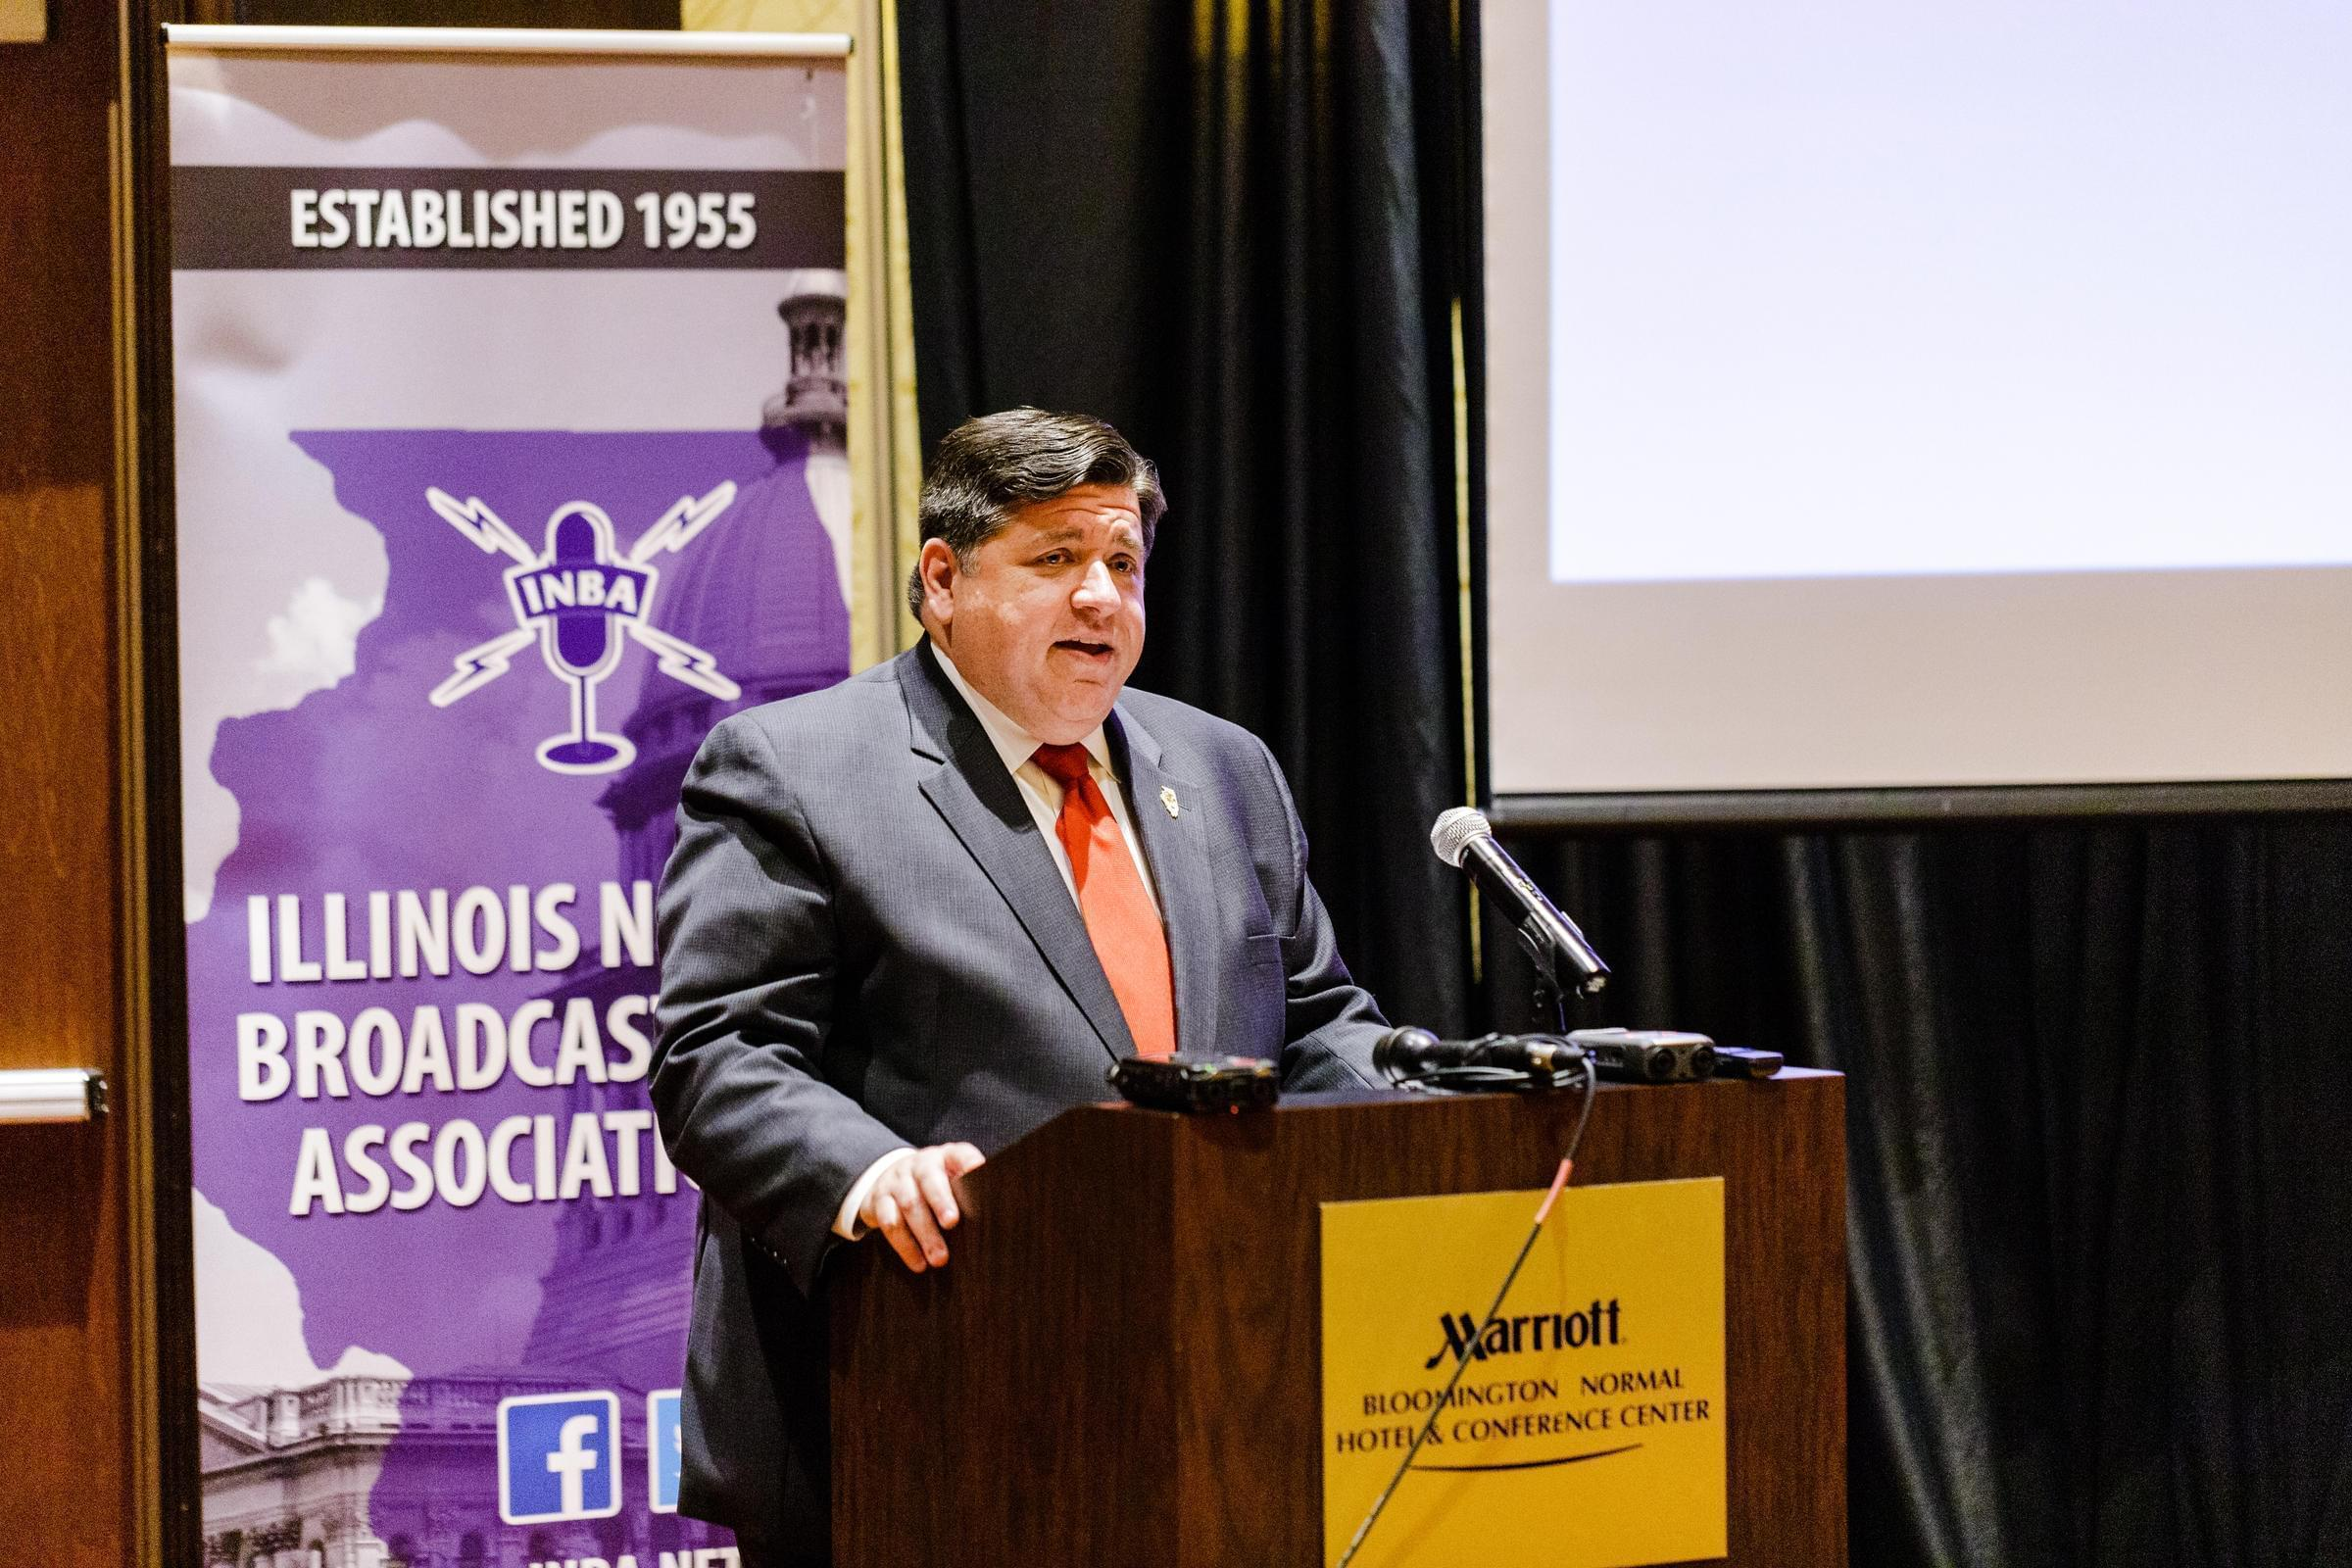 J.B. Pritzker becomes the second governor to speak before the Illinois News Broadcasters Association. He joins Otto Kerner, who met with journalists in 1964.